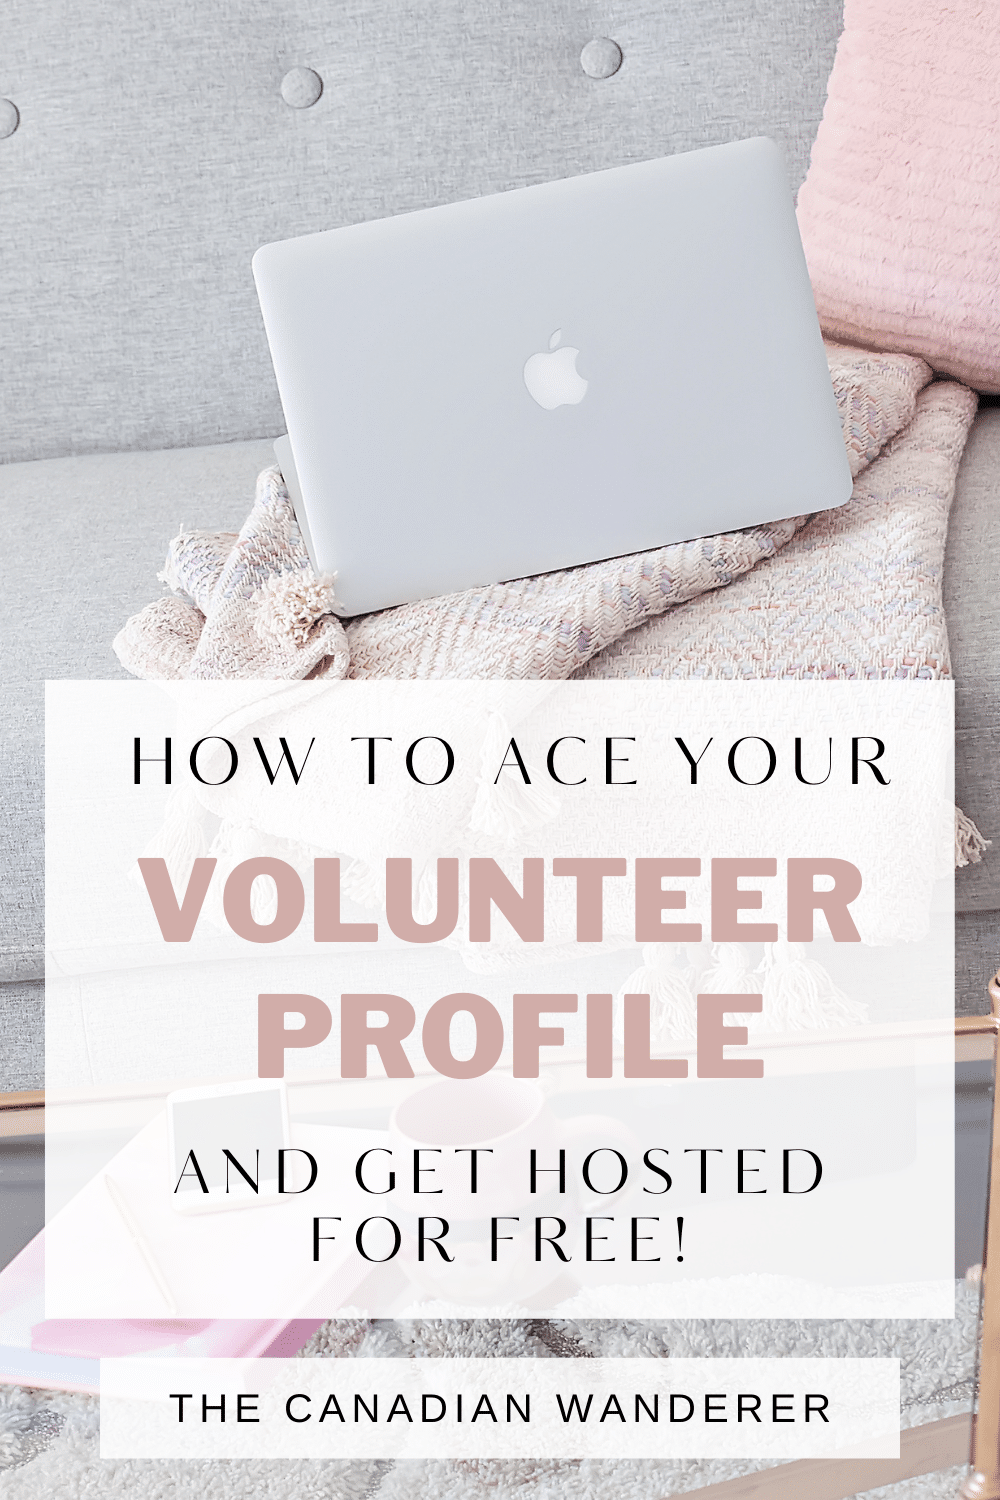 How to Ace Your Volunteer Profile and Get Free Accommodation - The Canadian Wanderer